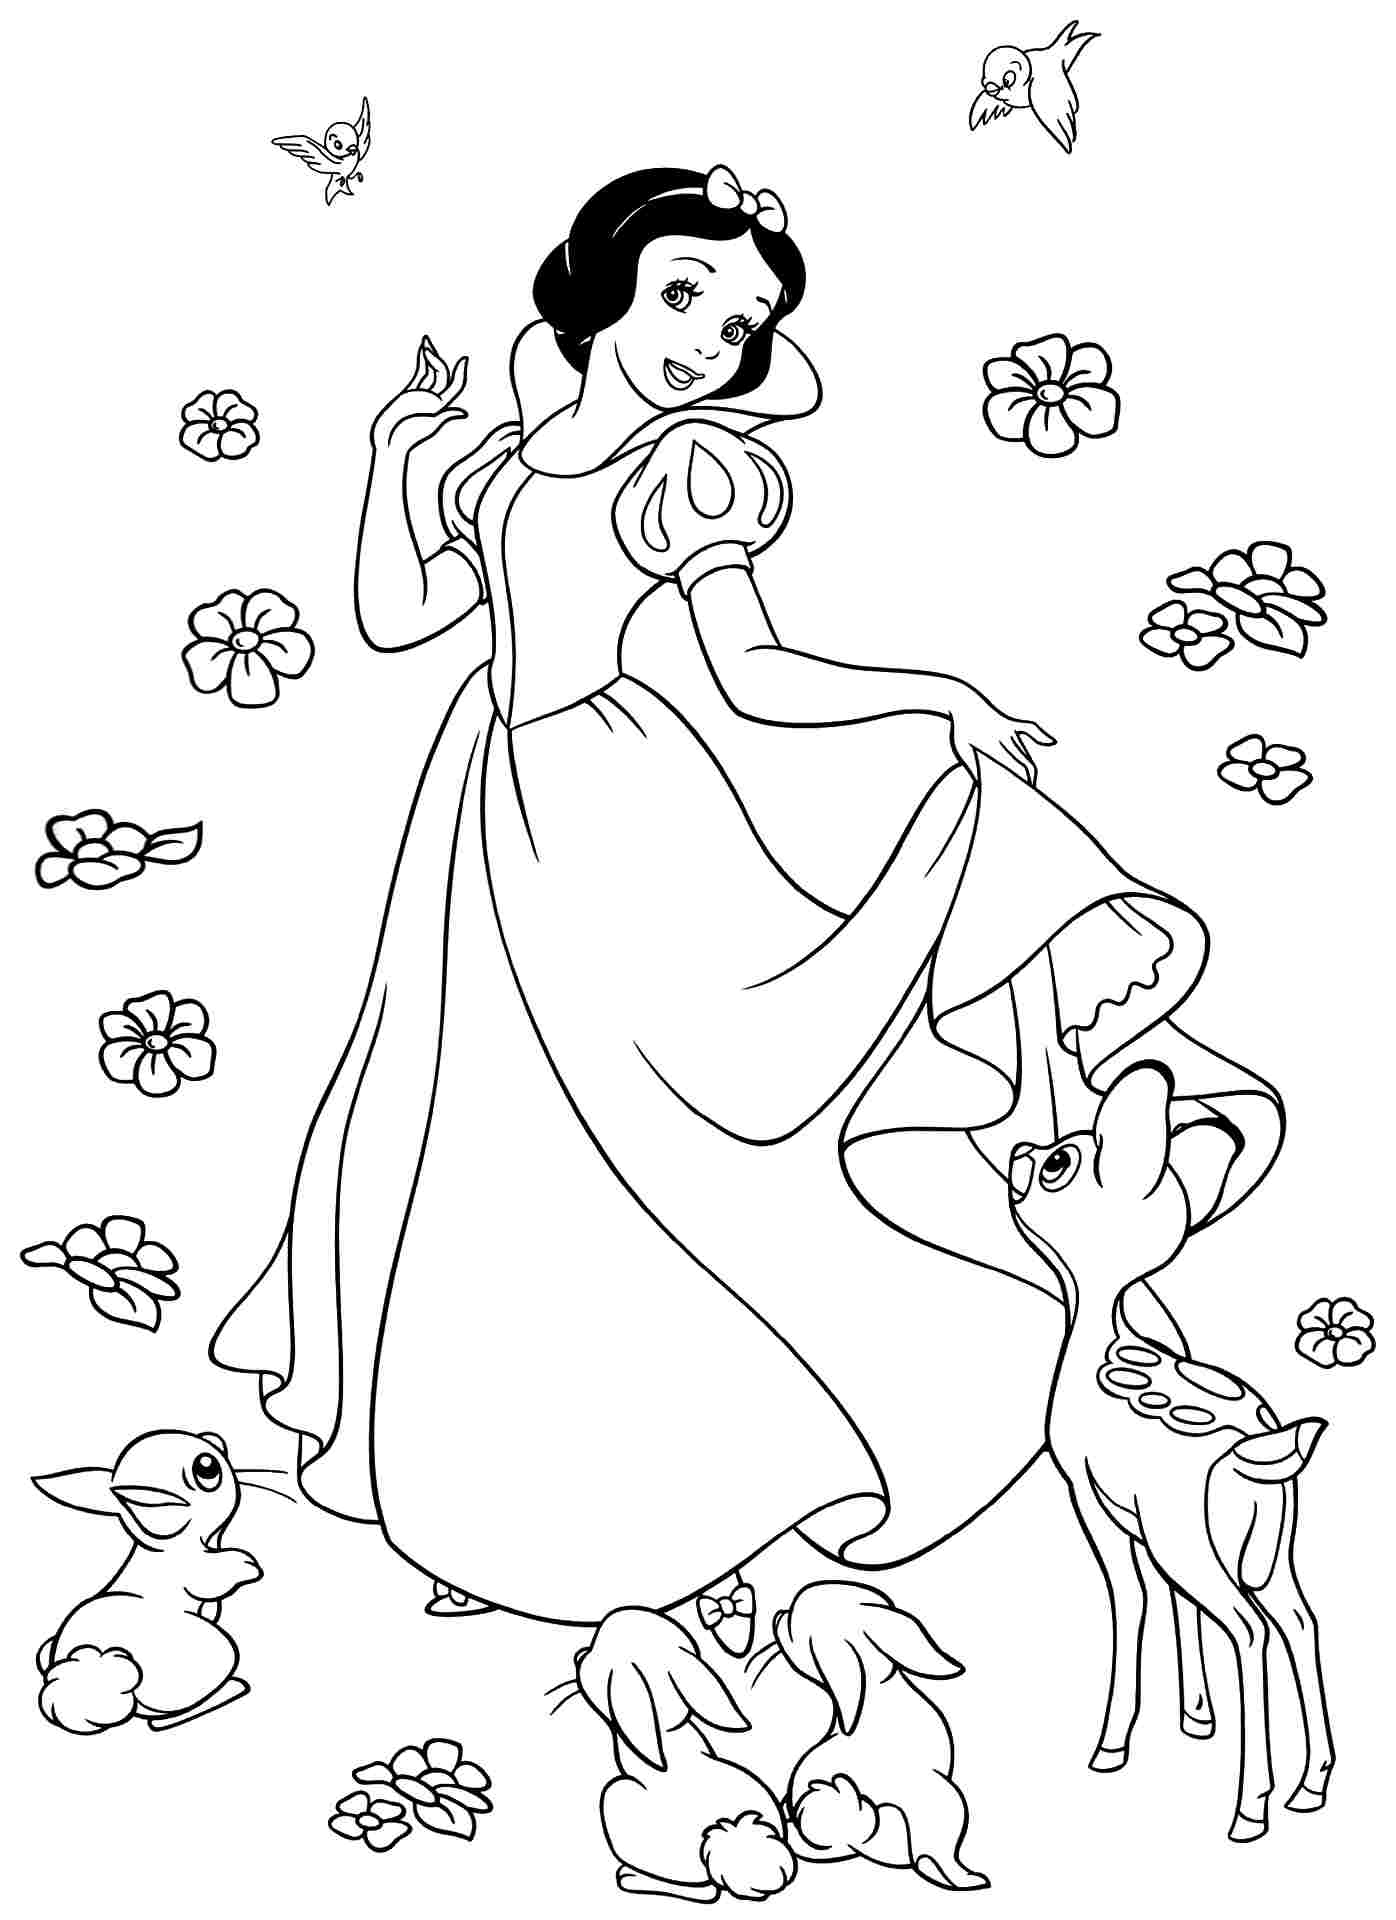 free snow white coloring pages beautiful snow white coloring pages white pages coloring free snow